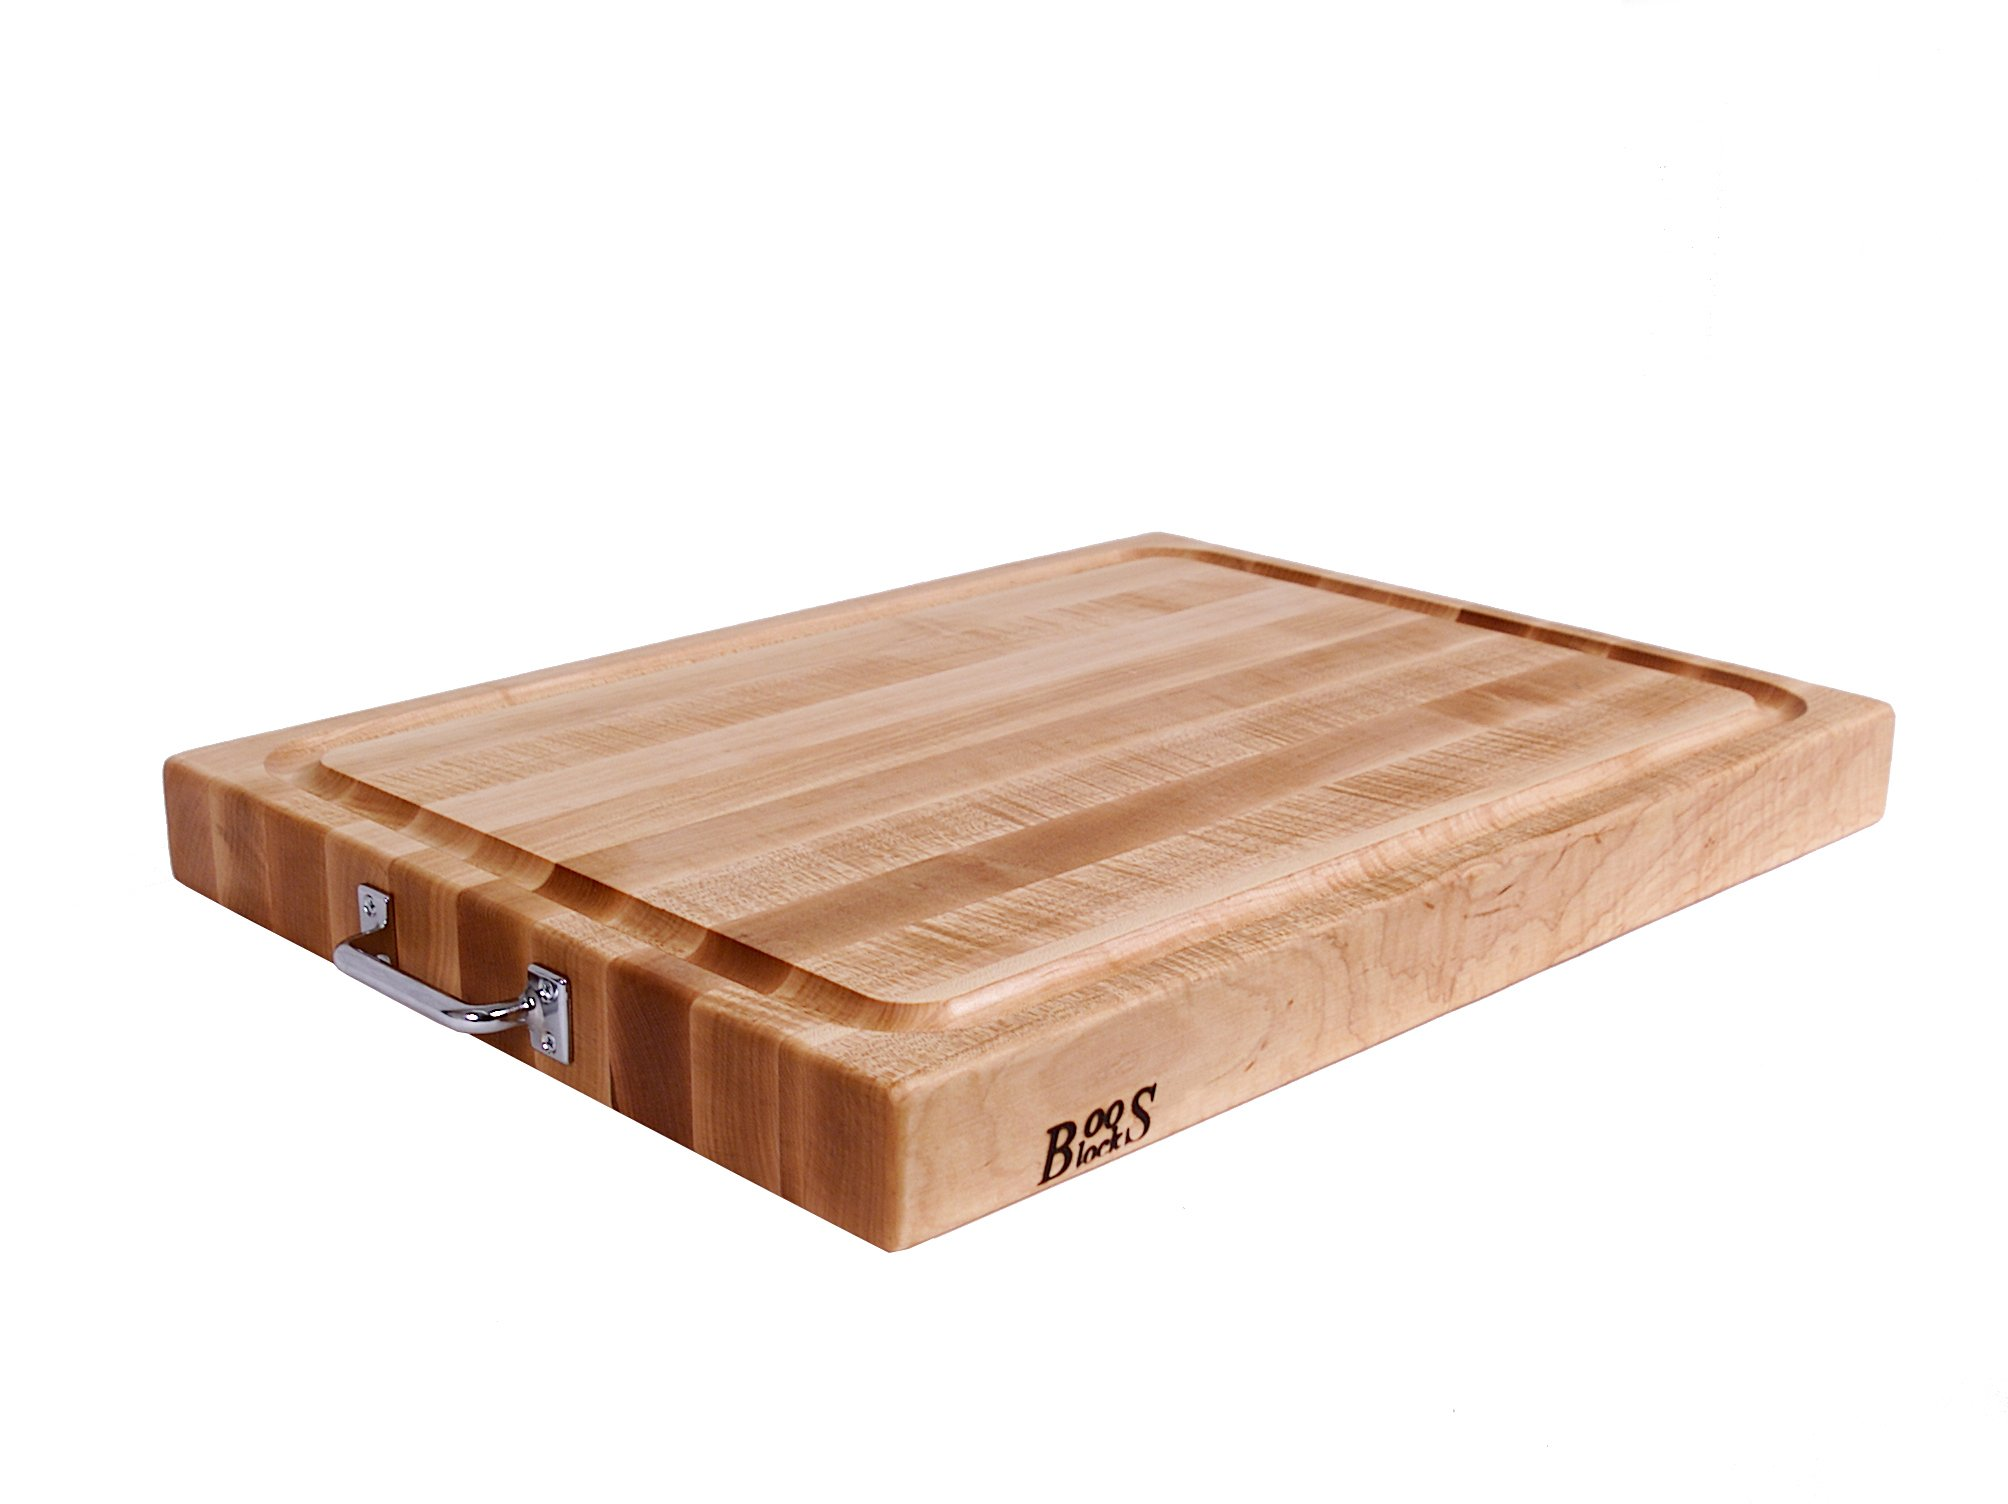 John Boos Reversible Maple Edge Grain Cutting Board with Juice Groove and Chrome Handles, 24 Inches x 18 Inches x 2.25 Inches